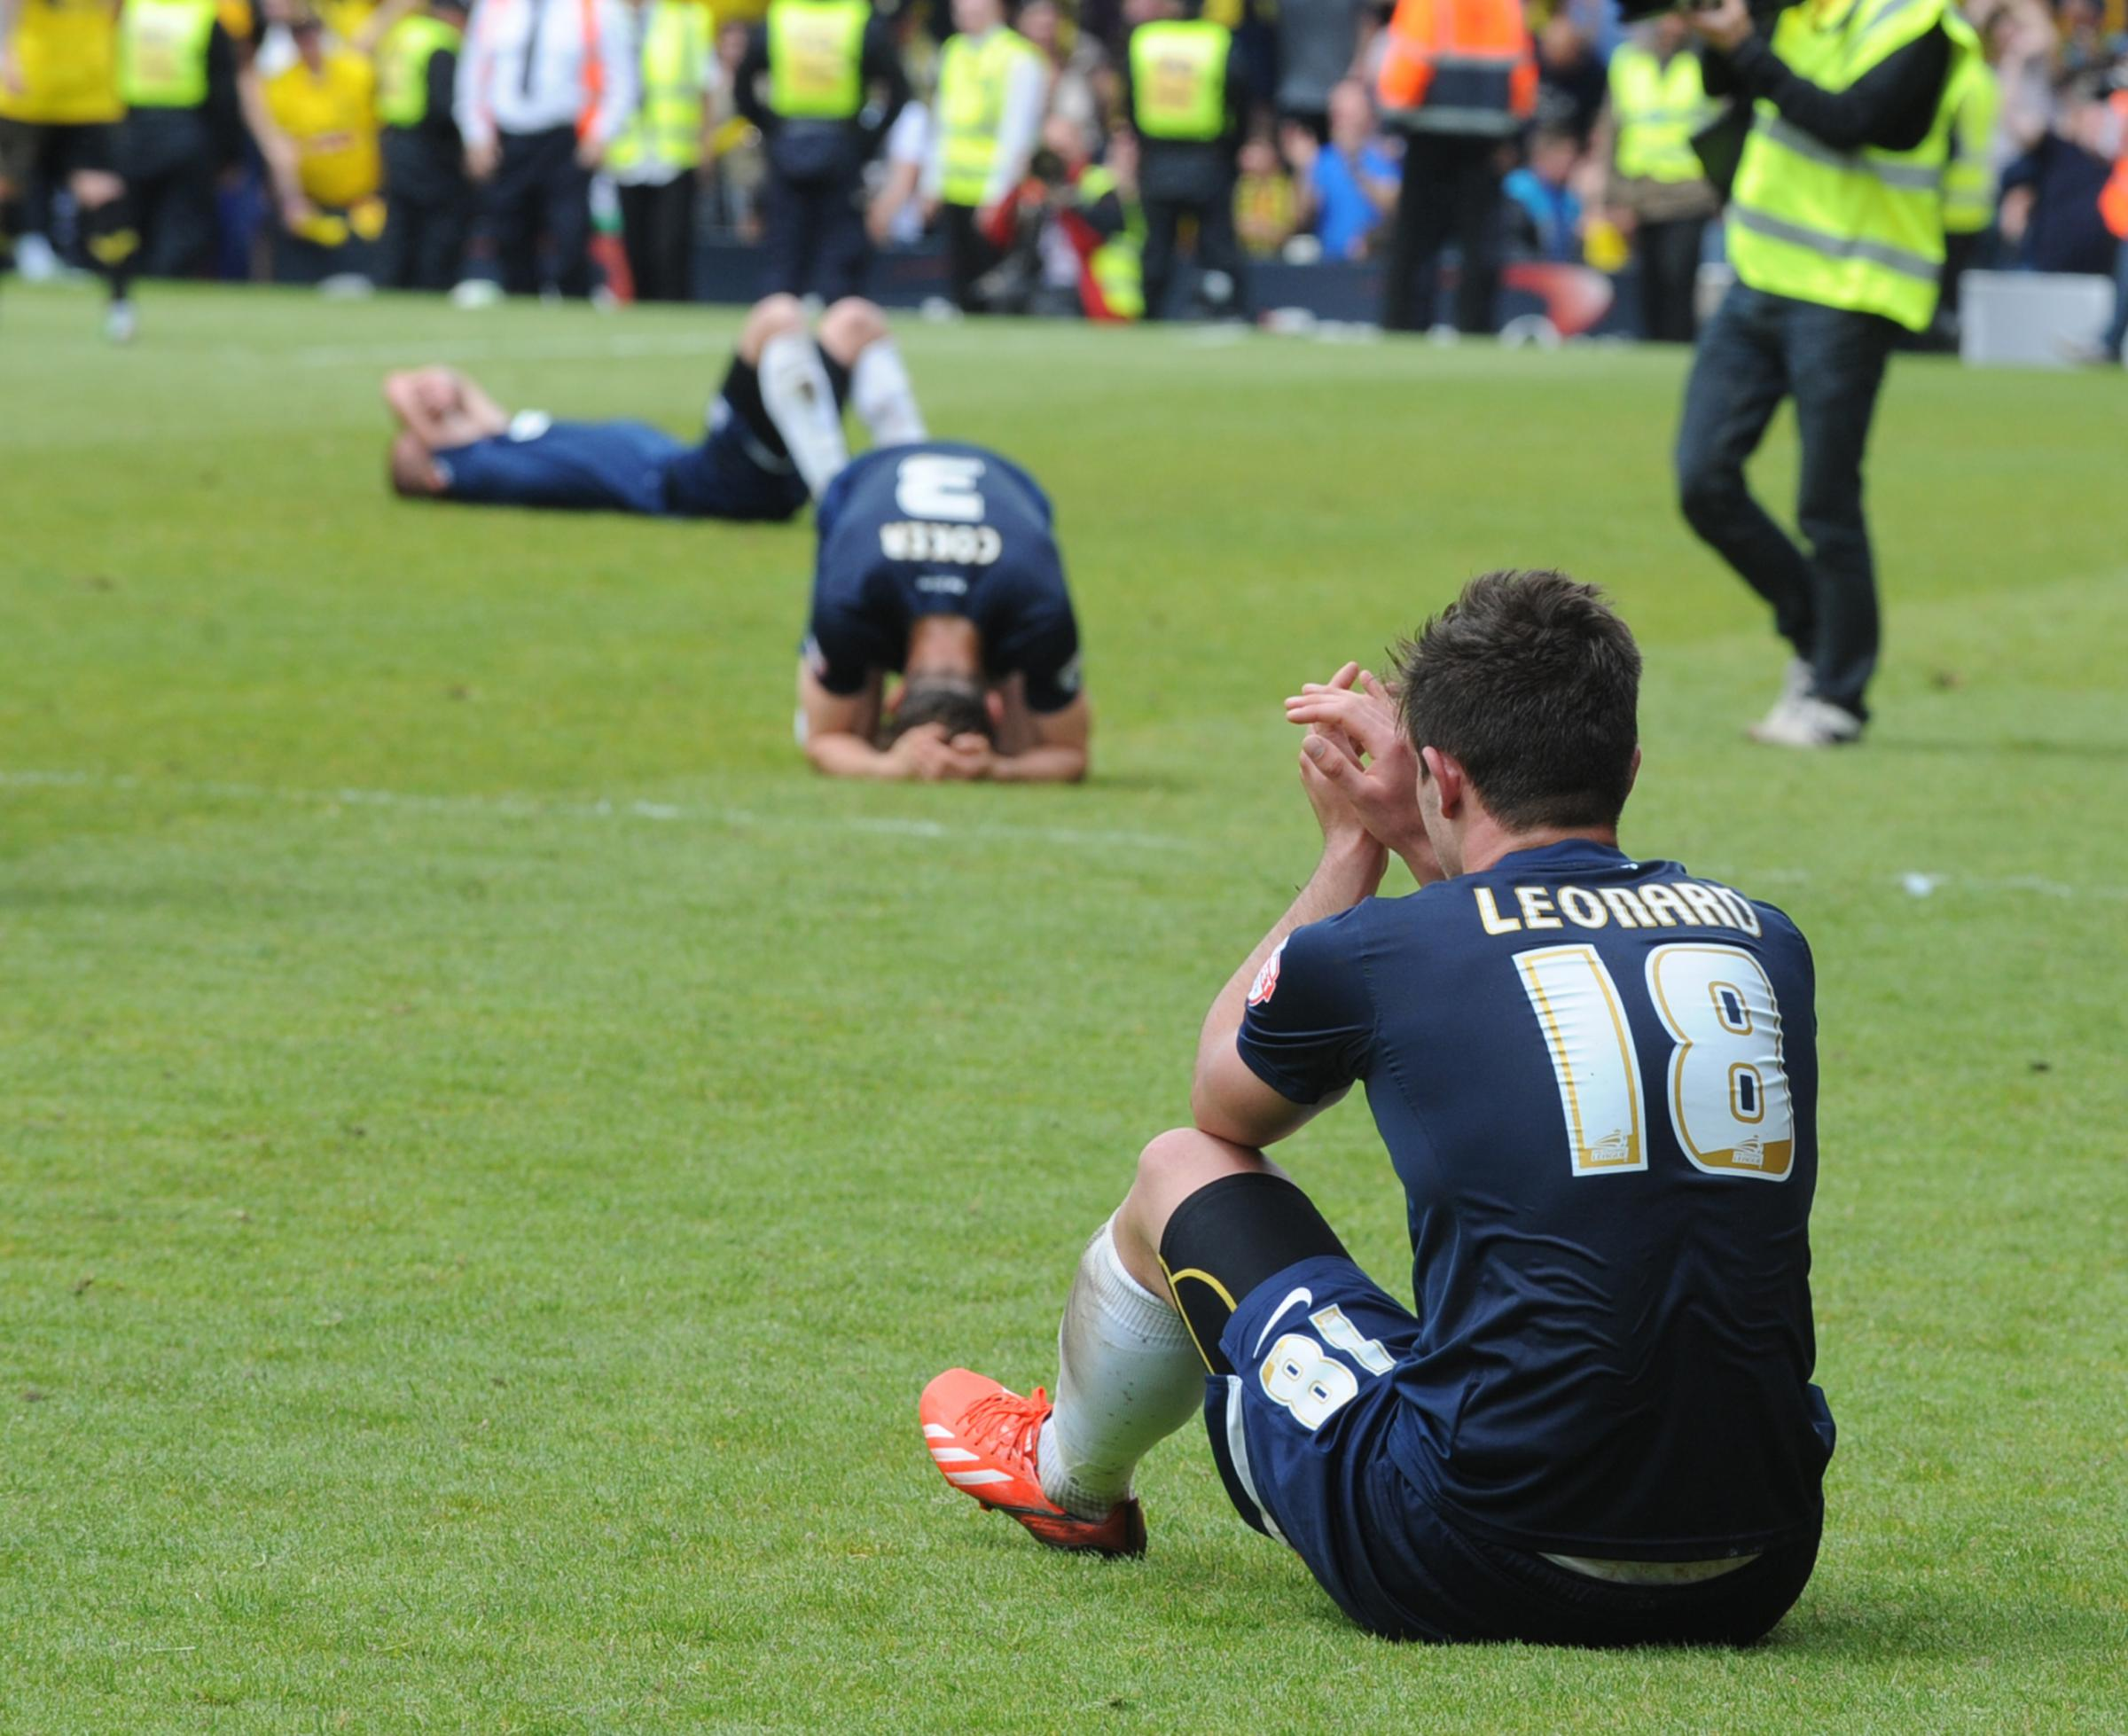 Gutted - Ryan Leonard and Ben Coker show their emotions at the final whistle